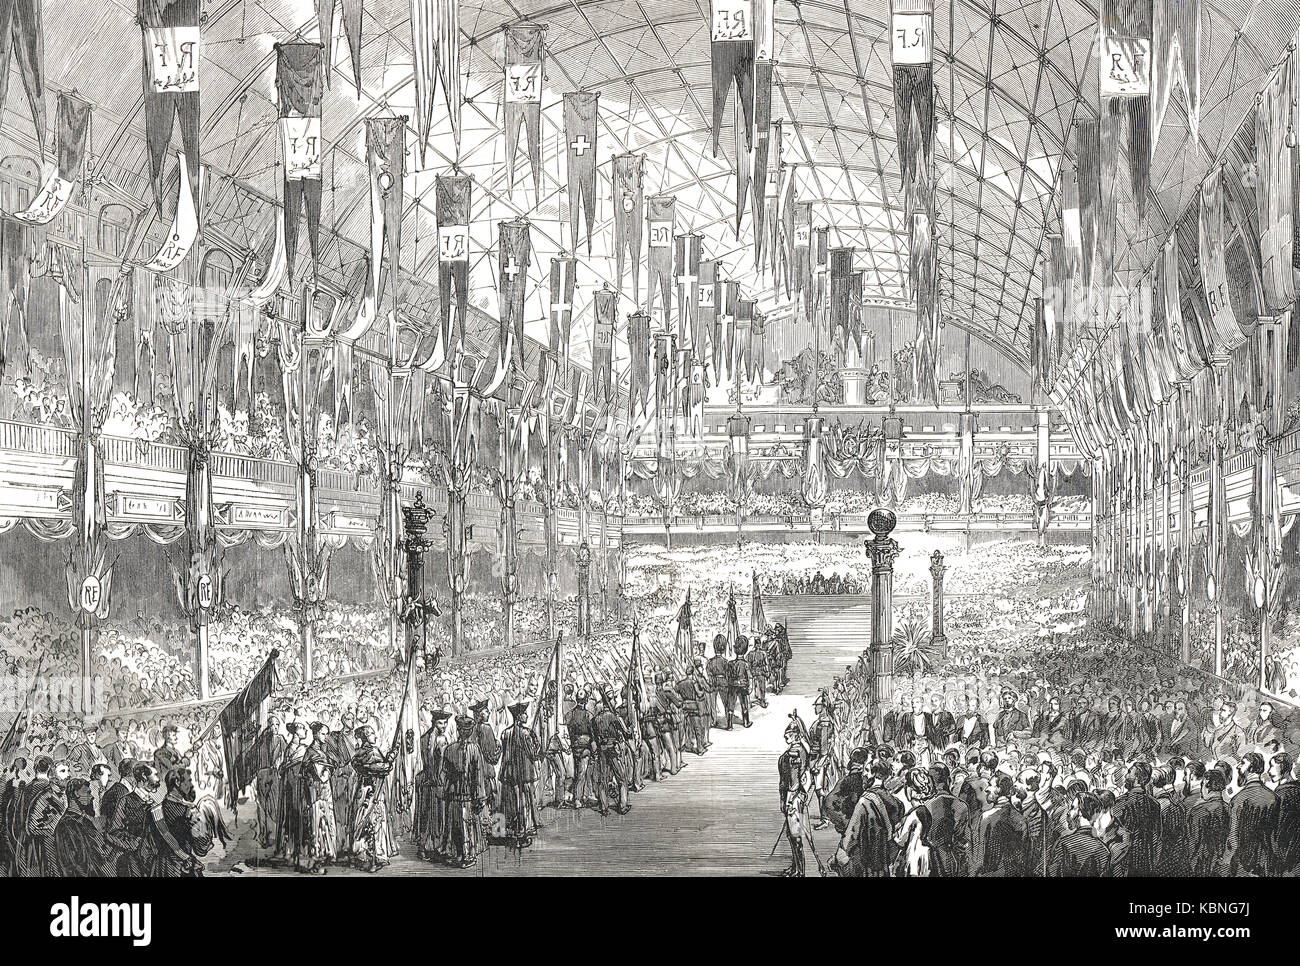 Awarding of prizes, Paris exhibition (Exposition Universelle), 1878 - Stock Image